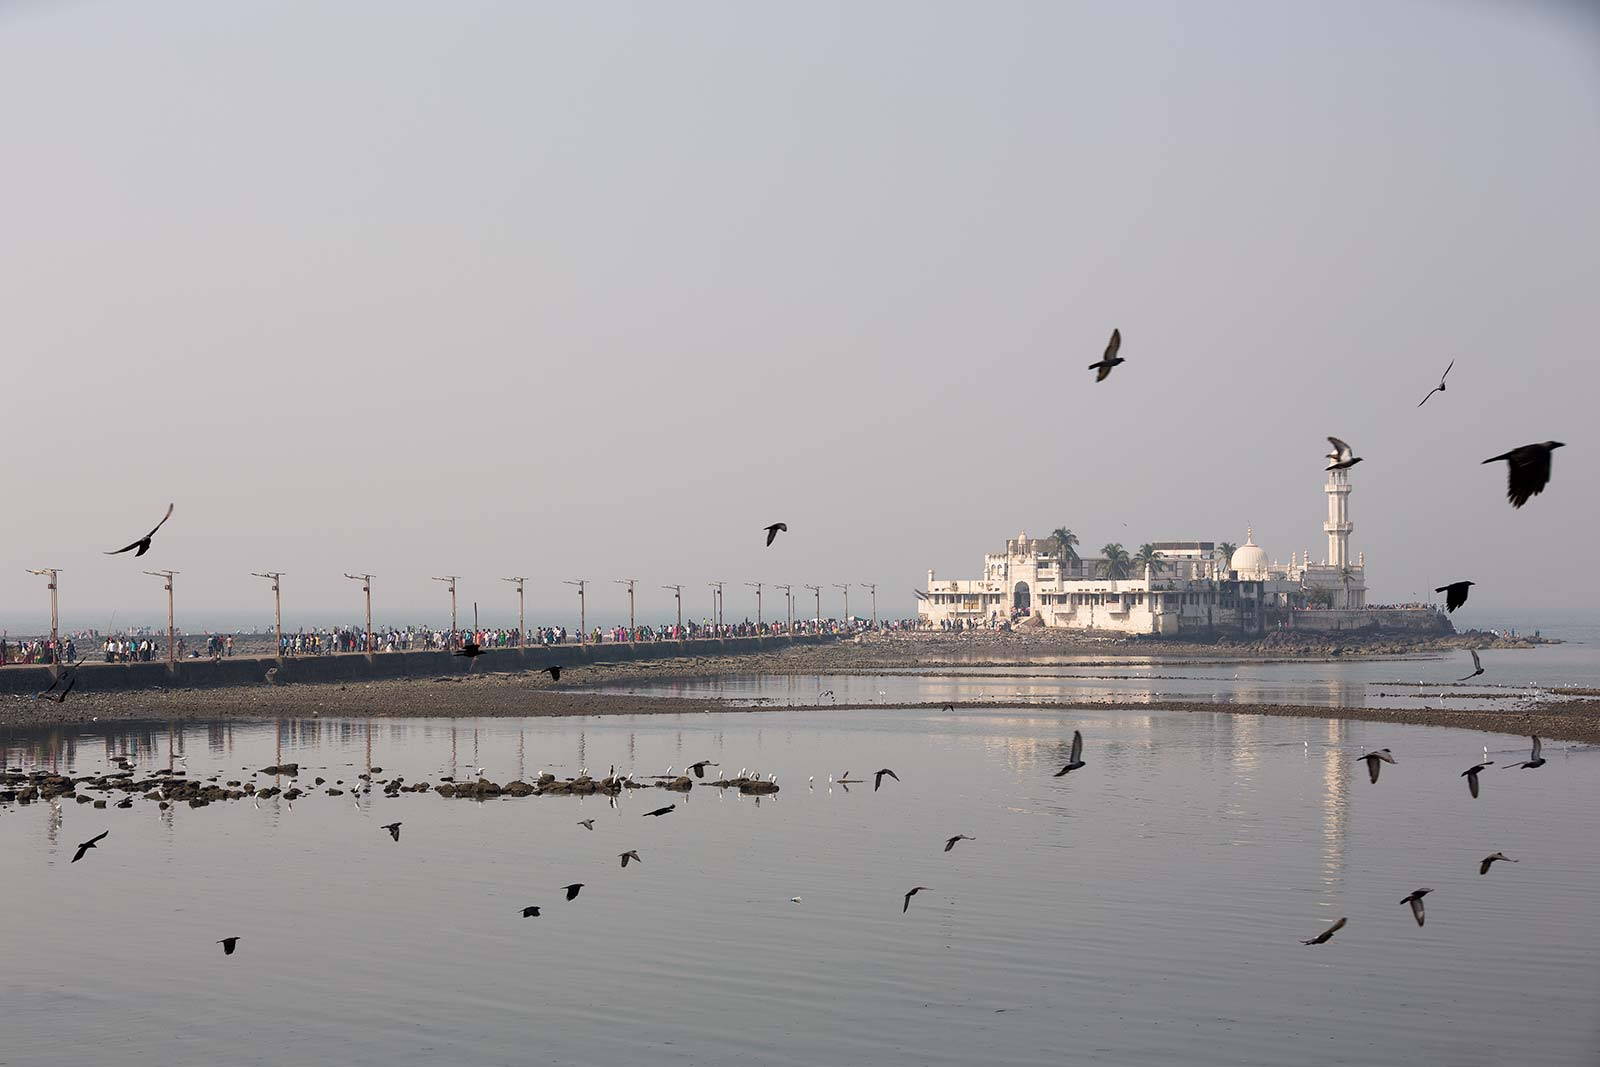 Built in 1431, this Mughal-style architectural marvel serves as a reminder of the city's rich and multicultural history. The six-hundred-year-old dargah is dedicated to the memory of Sayyed Pir Haji Ali Shah Bukhari. Sitting atop a set of large rocks in the sea, the Haji Ali Dargah features stunning white-marble pillars, domes and minarets, which showcase Indo-Islamic architecture at its finest.